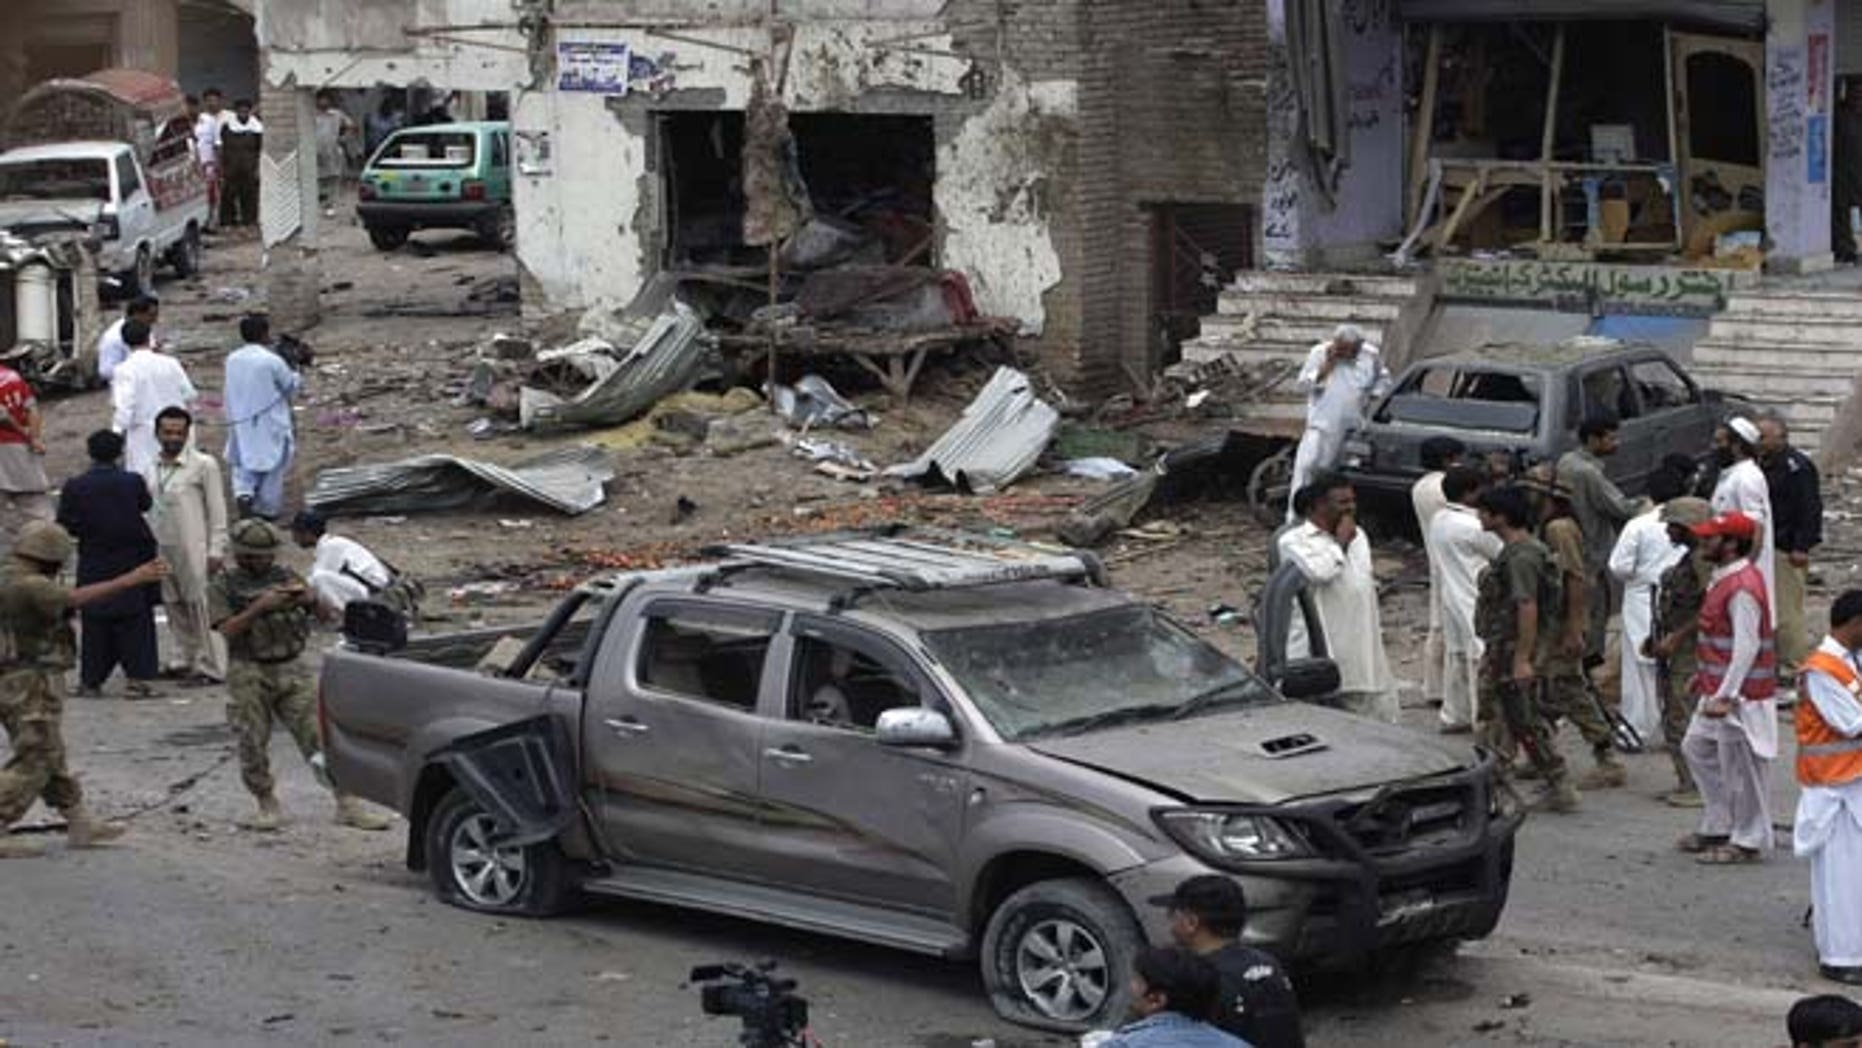 June 30, 2013: Pakistani security officials and rescue workers examine the site of car bombing on the outskirts of Peshawar, Pakistan. A car bomb exploded as a convoy of paramilitary troops passed through the outskirts of the northwest Pakistani city of Peshawar, killing more than a dozen people and wounding scores of others, police said.